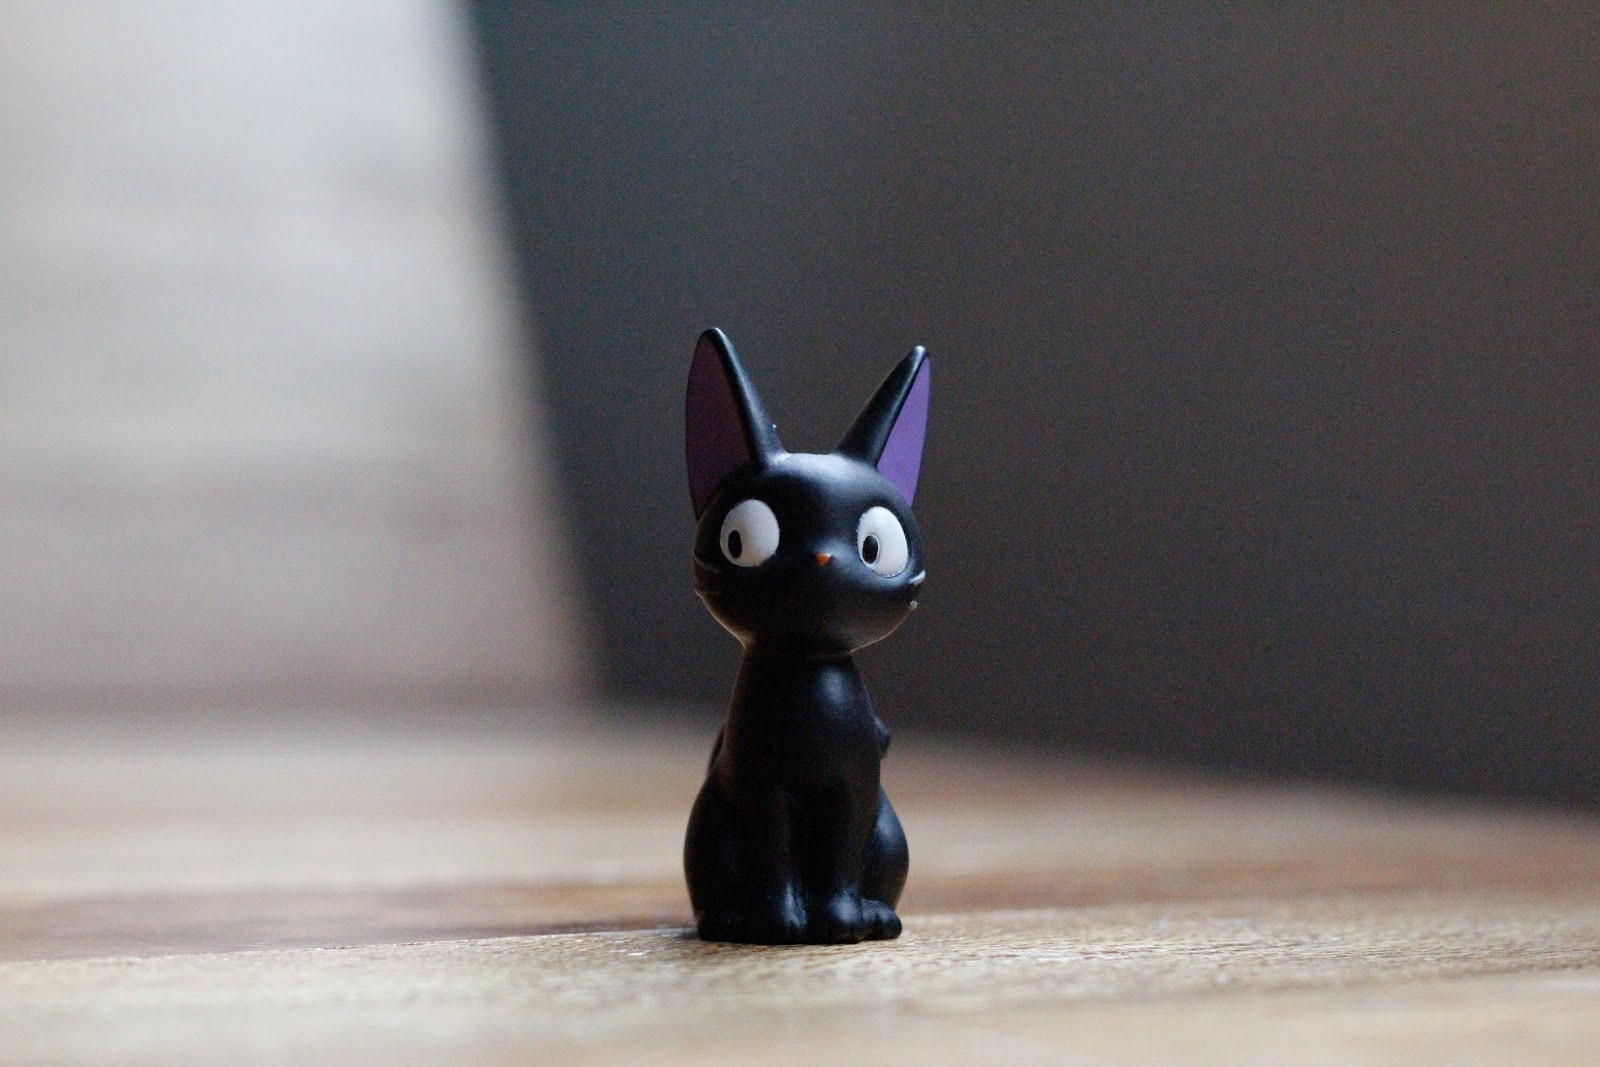 Black toy cat